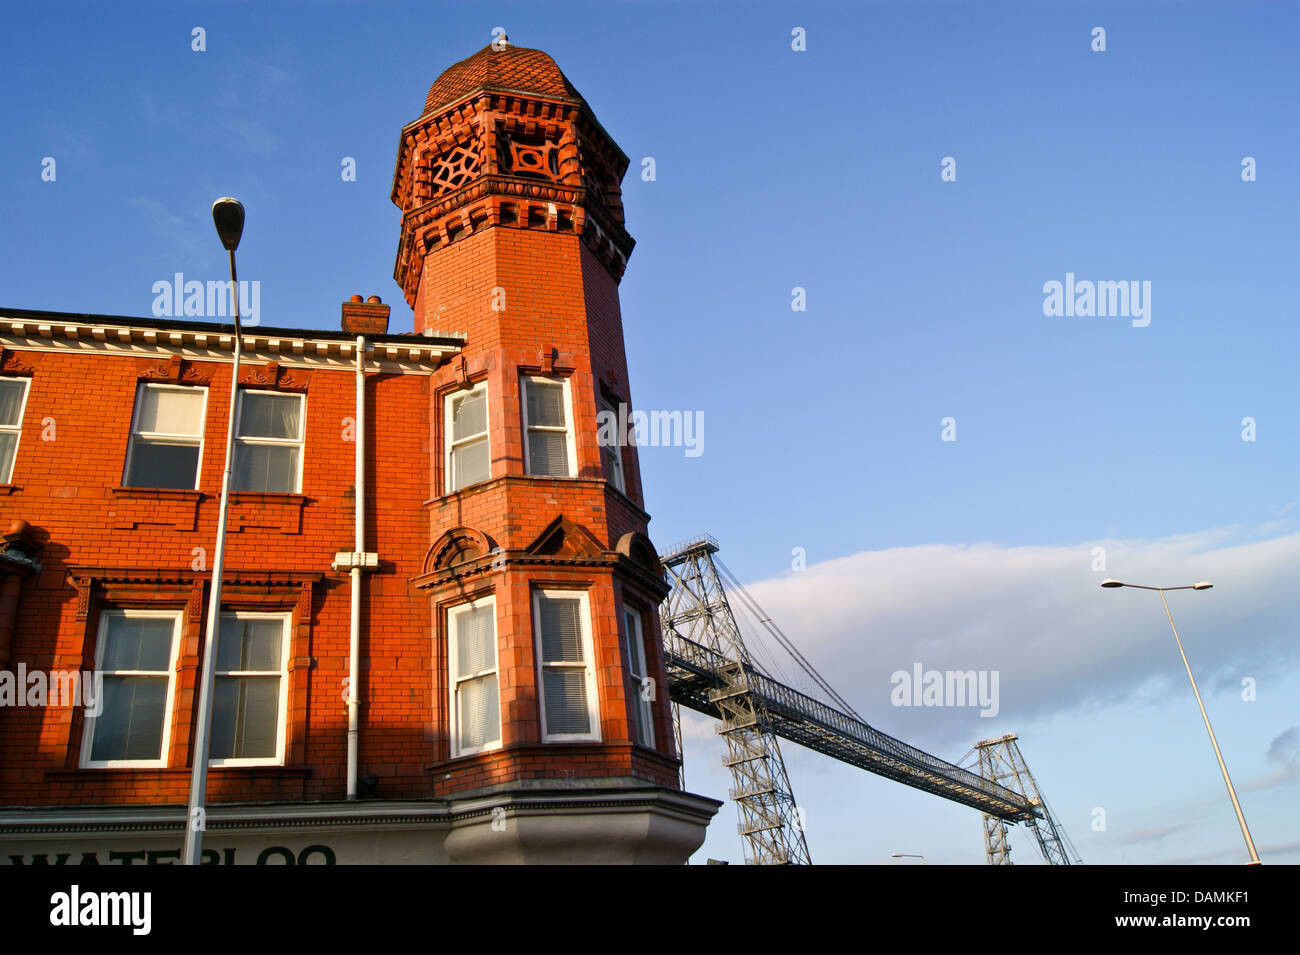 Waterloo Hotel (1870) and the transporter bridge, at sunset, Newport, Cas Newydd, Wales - Stock Image